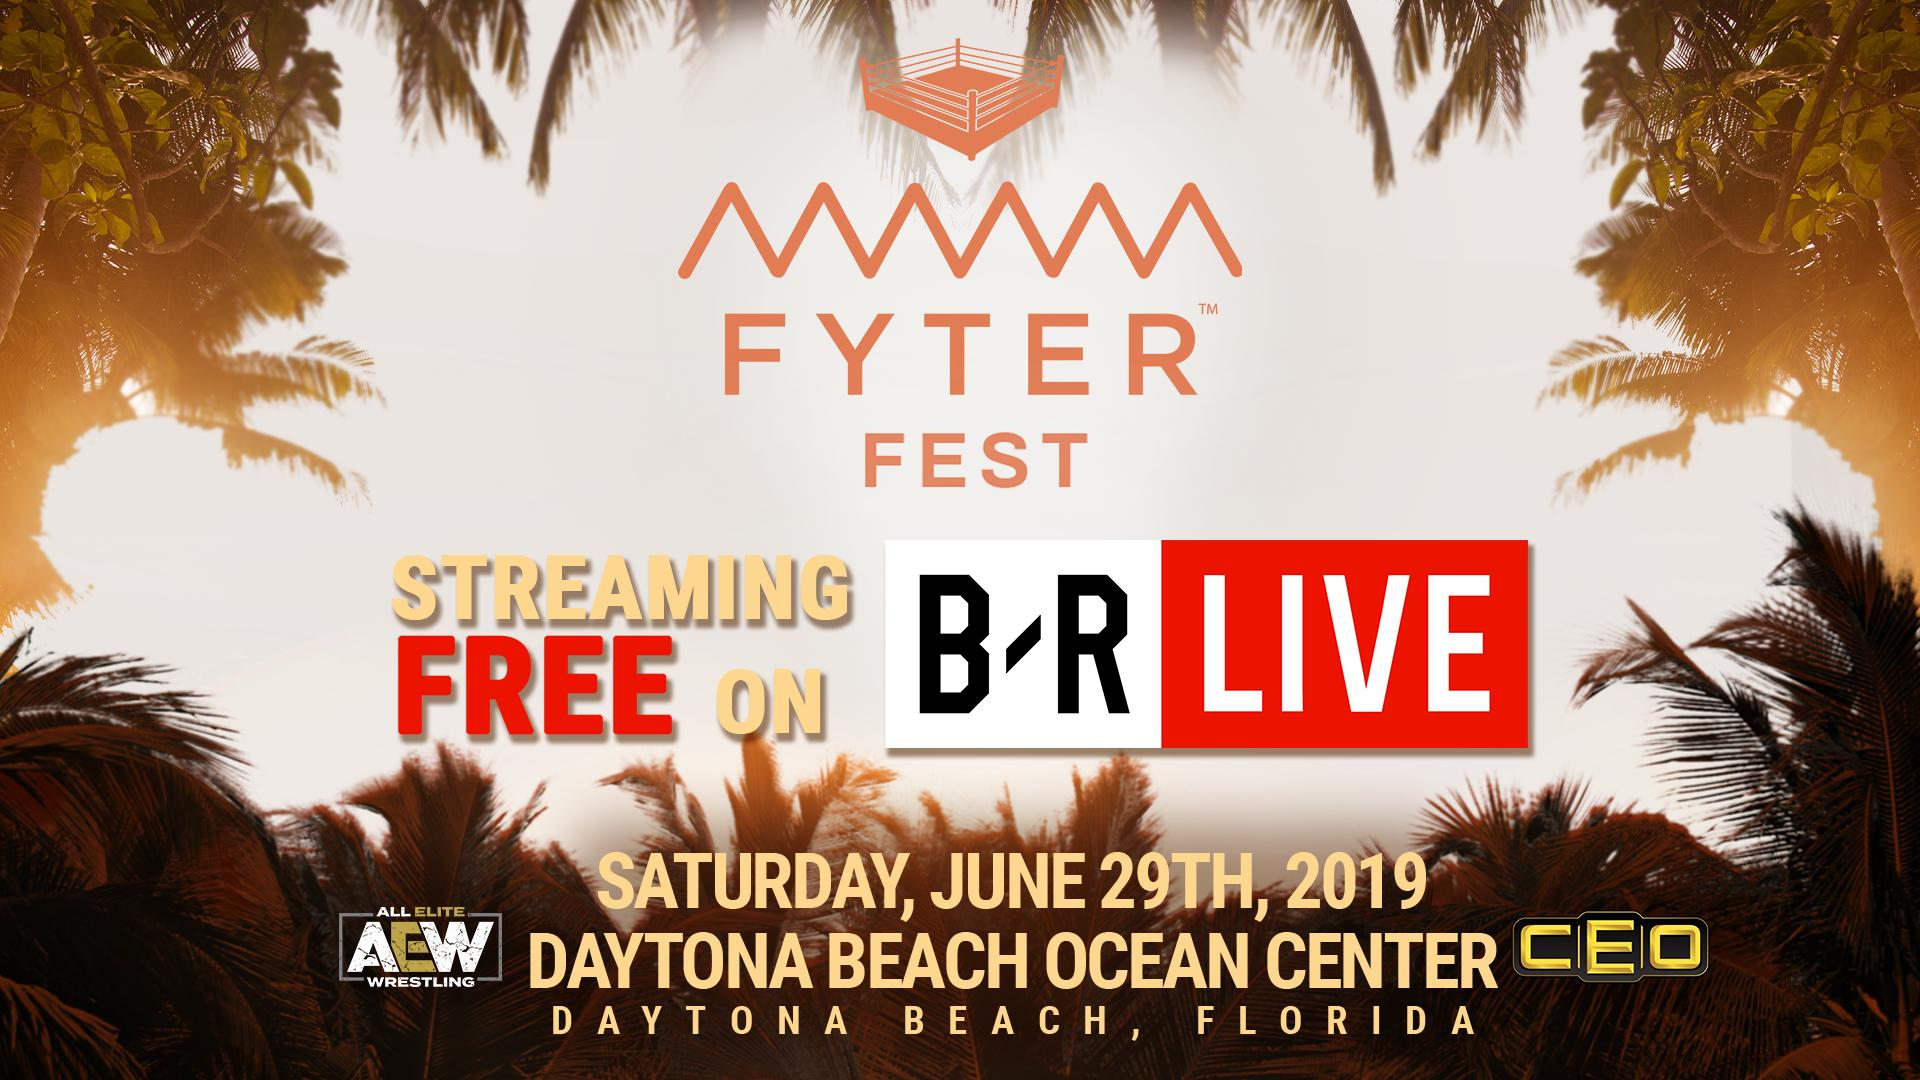 AEW's next major event will be free to watch